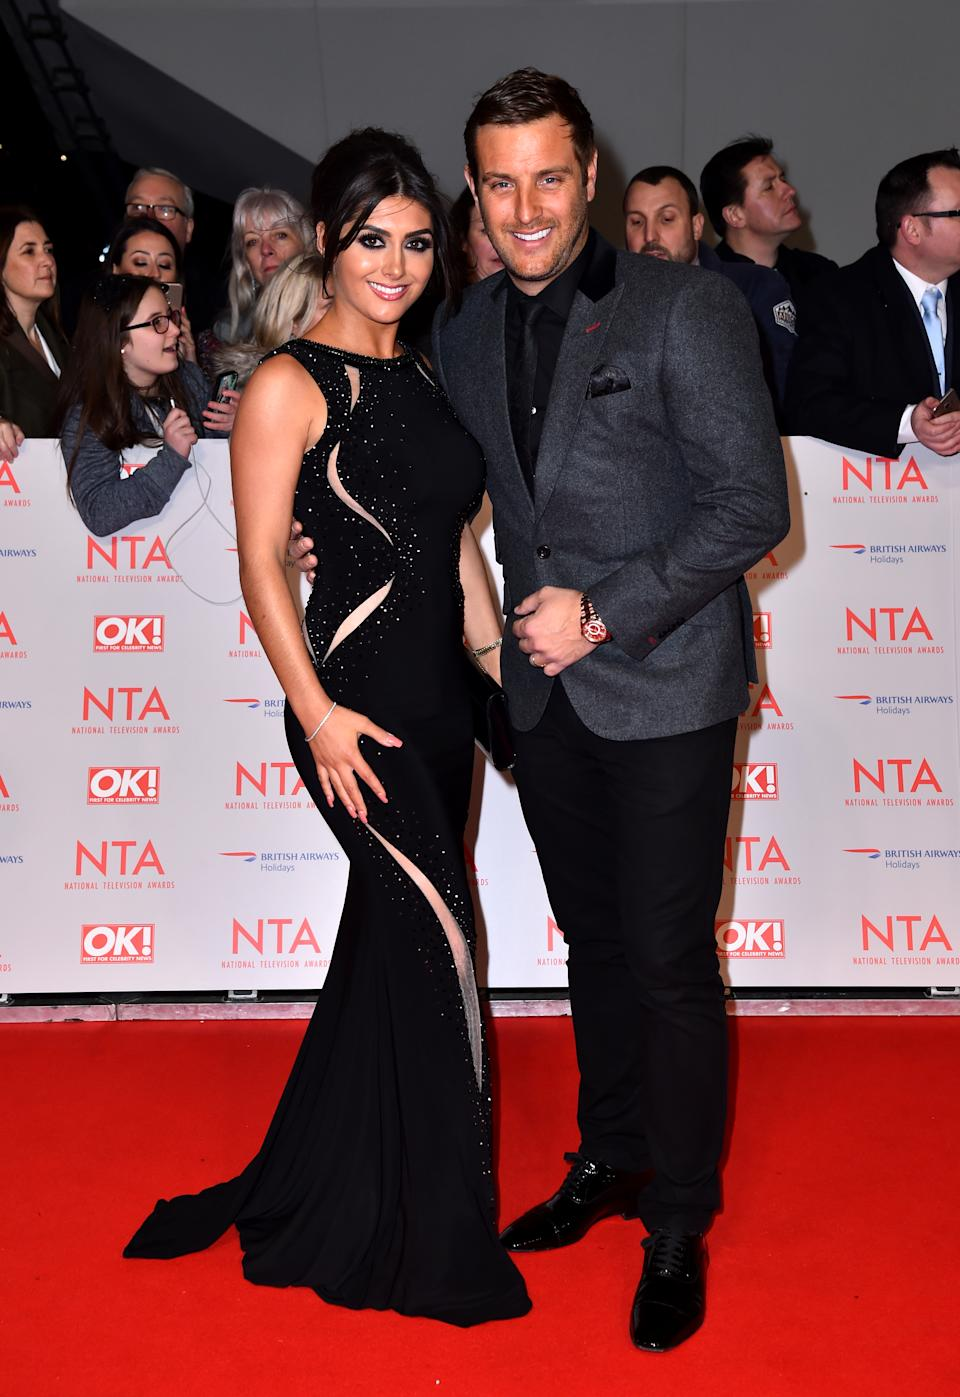 Sadie Stuart and Elliott Wright attending the National Television Awards 2018 held at the O2 Arena, London. PRESS ASSOCIATION Photo. Picture date: Tuesday January 23, 2018. See PA story SHOWBIZ NTAs. Photo credit should read: Matt Crossick/PA Wire (Photo by Matt Crossick/PA Images via Getty Images)